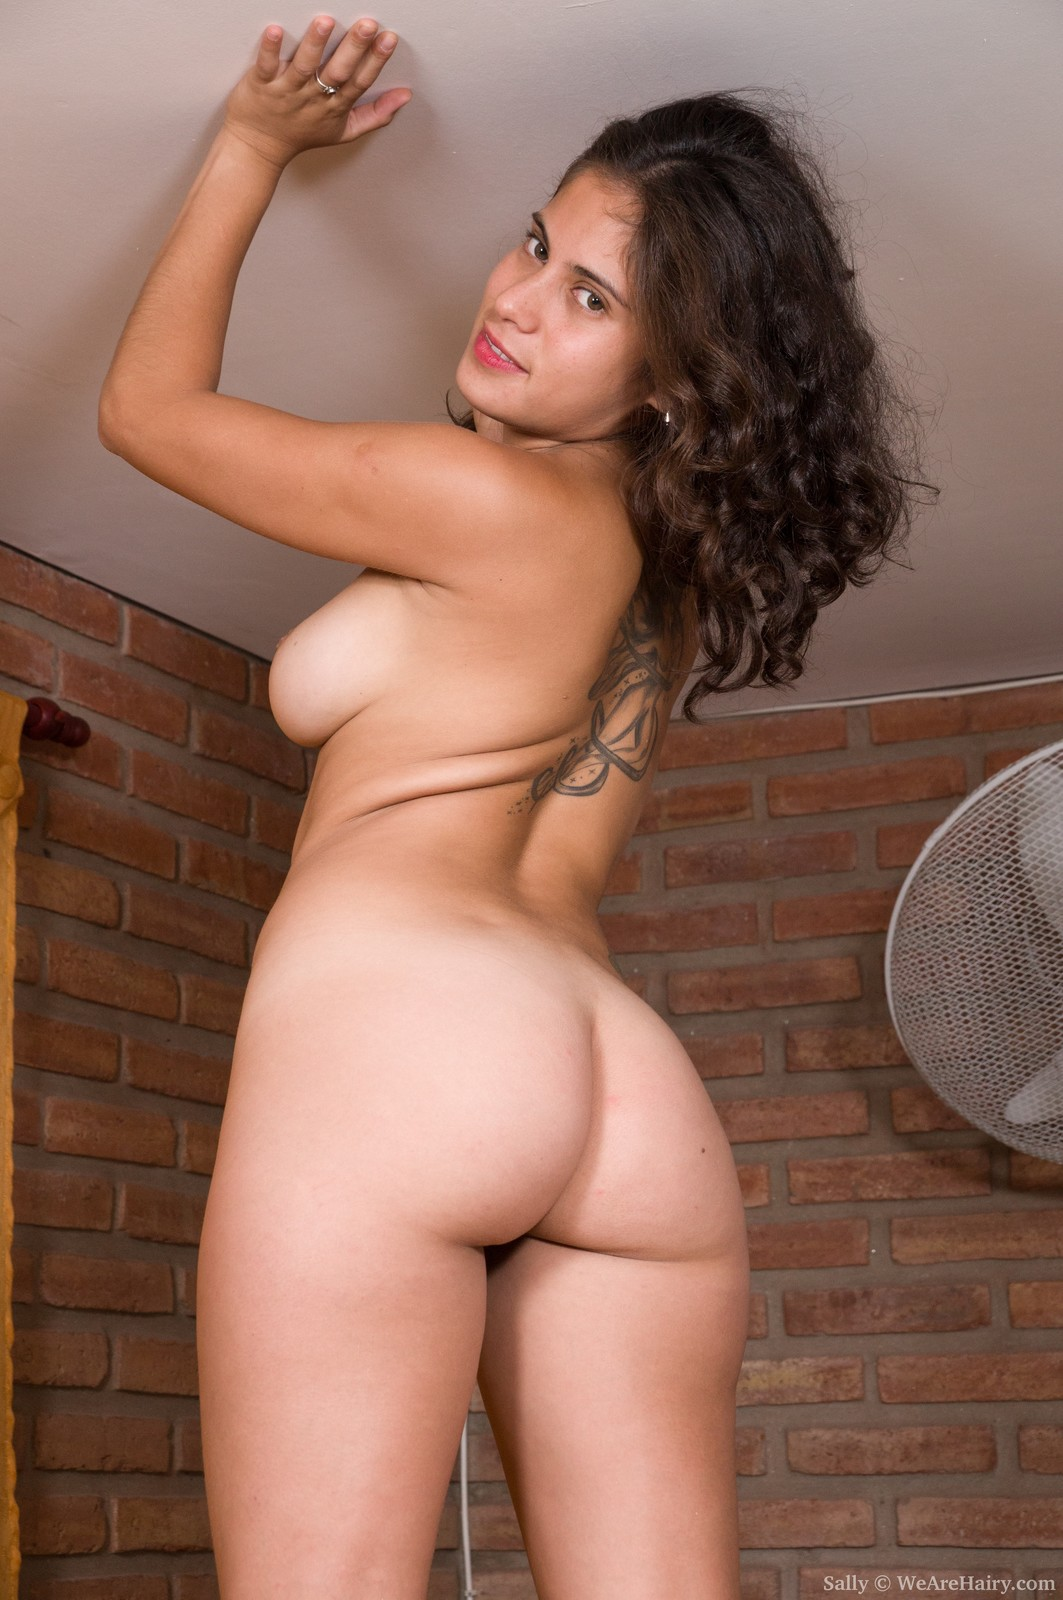 Naked woman beautiful latin